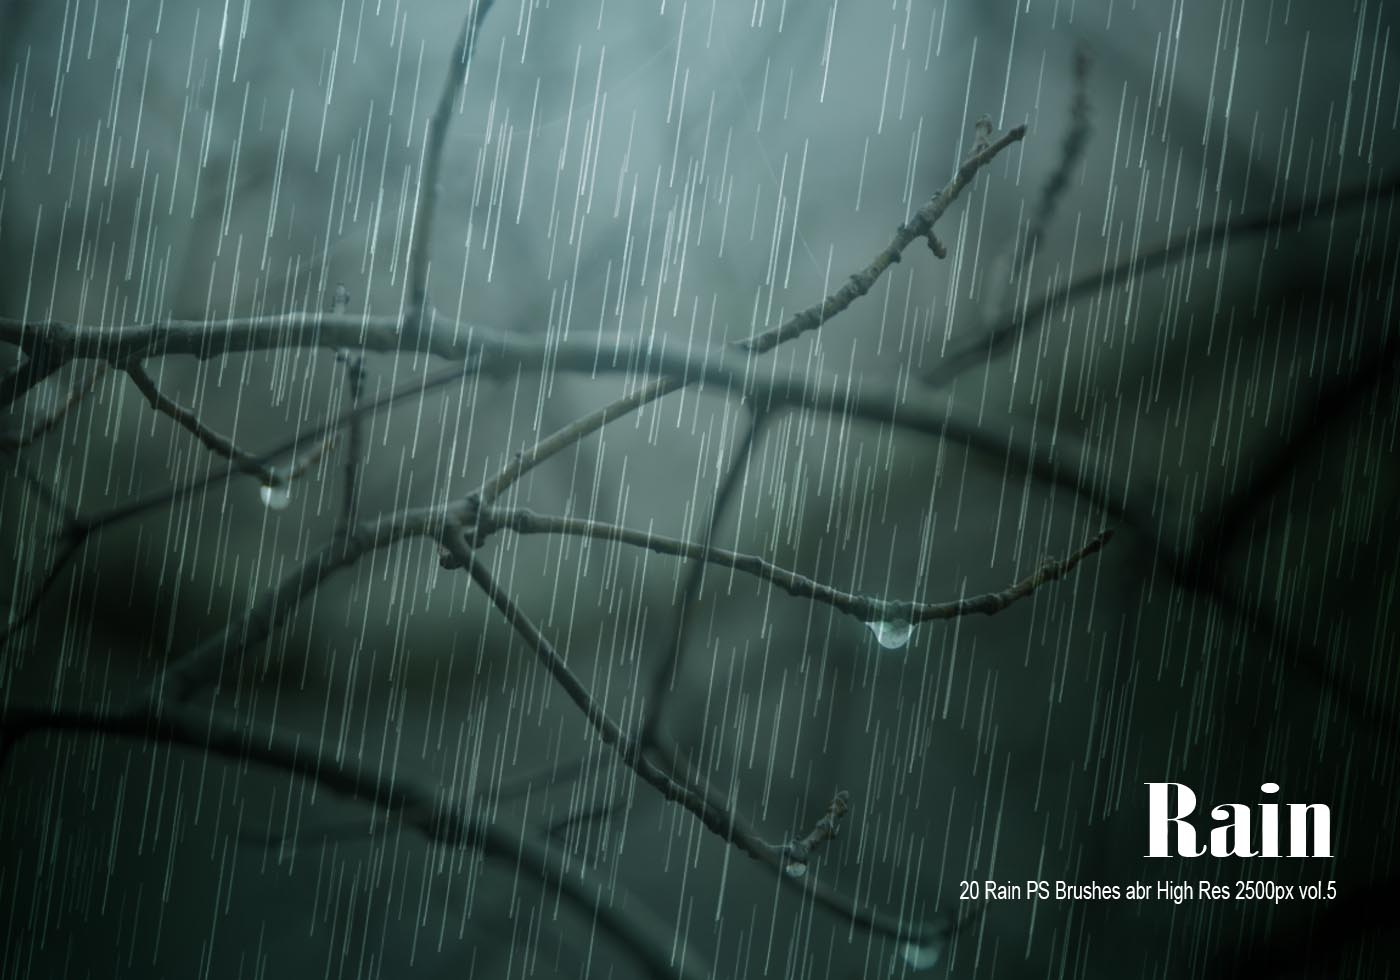 Black Marble Wallpaper 20 Rain Ps Brushes Abr Vol 6 Free Photoshop Brushes At